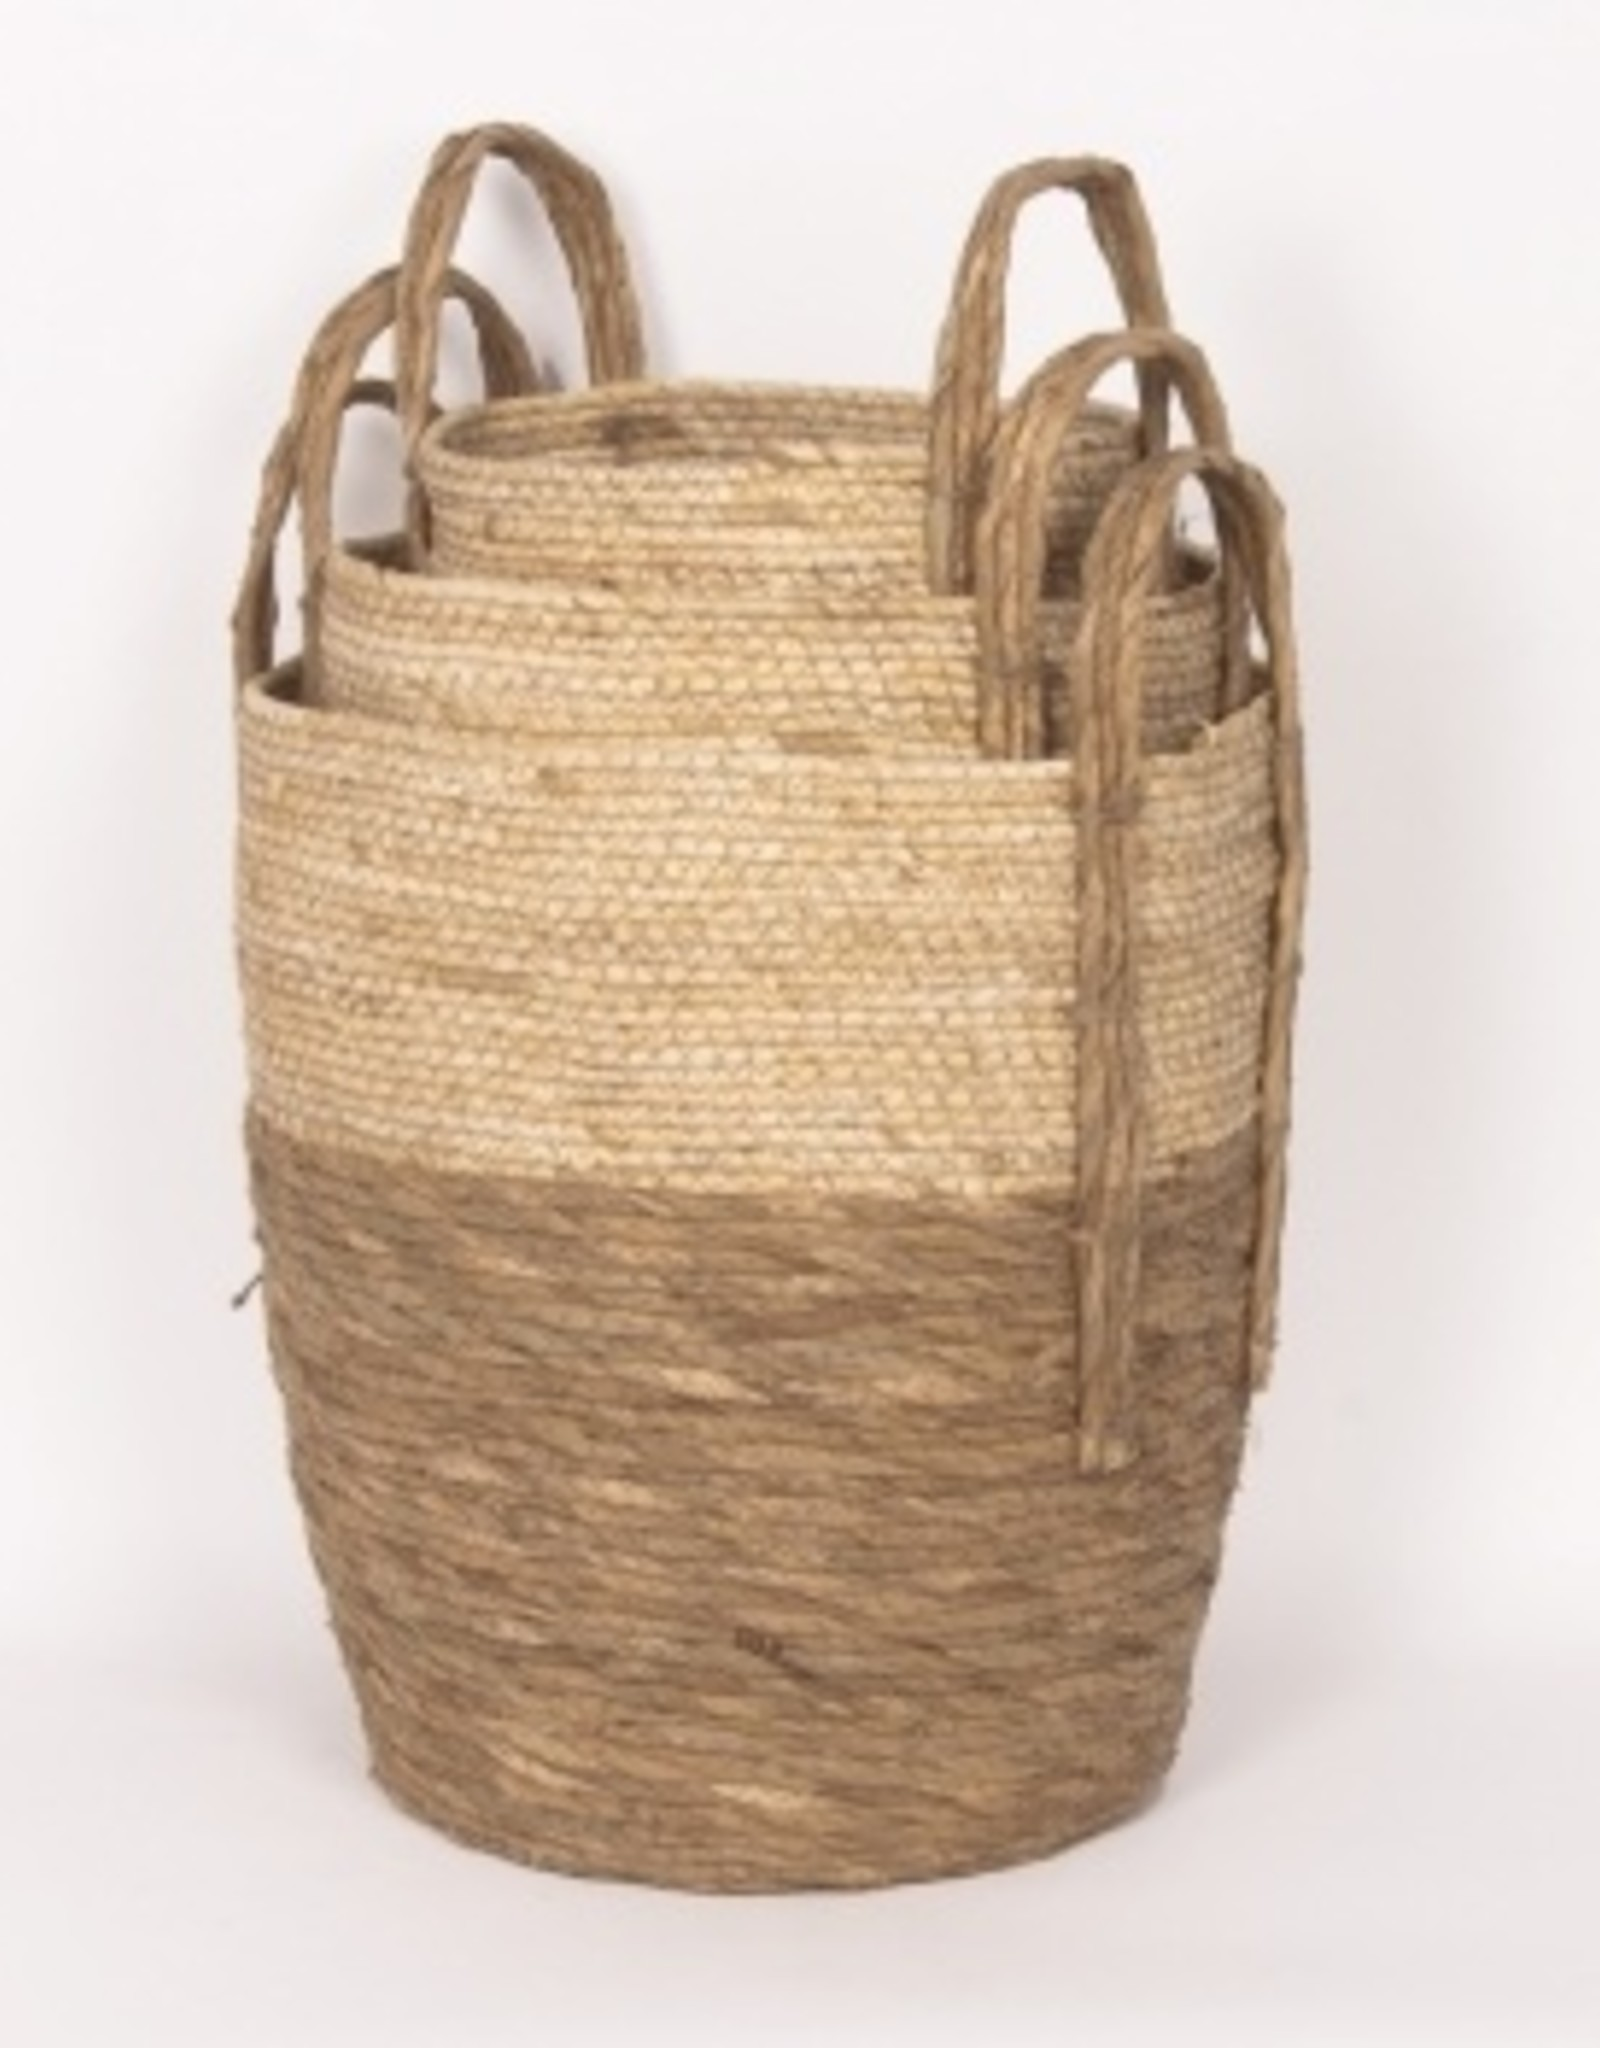 Beige/Natural Straw Basket (small)